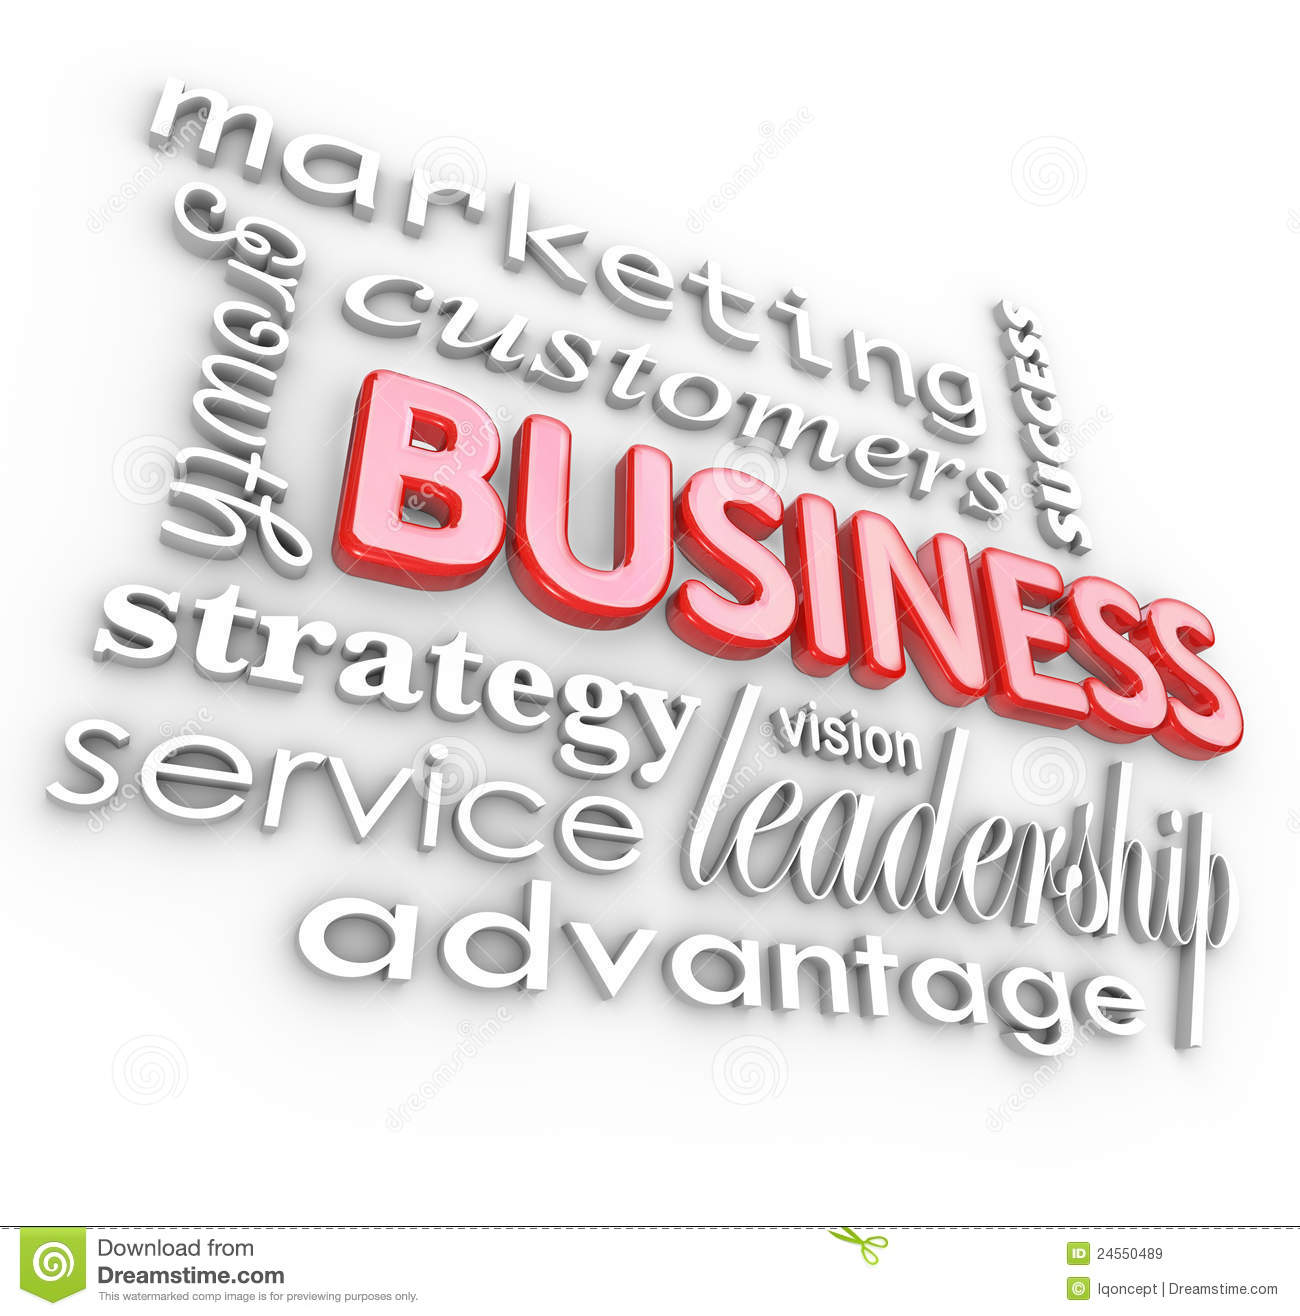 Image result for principles of business